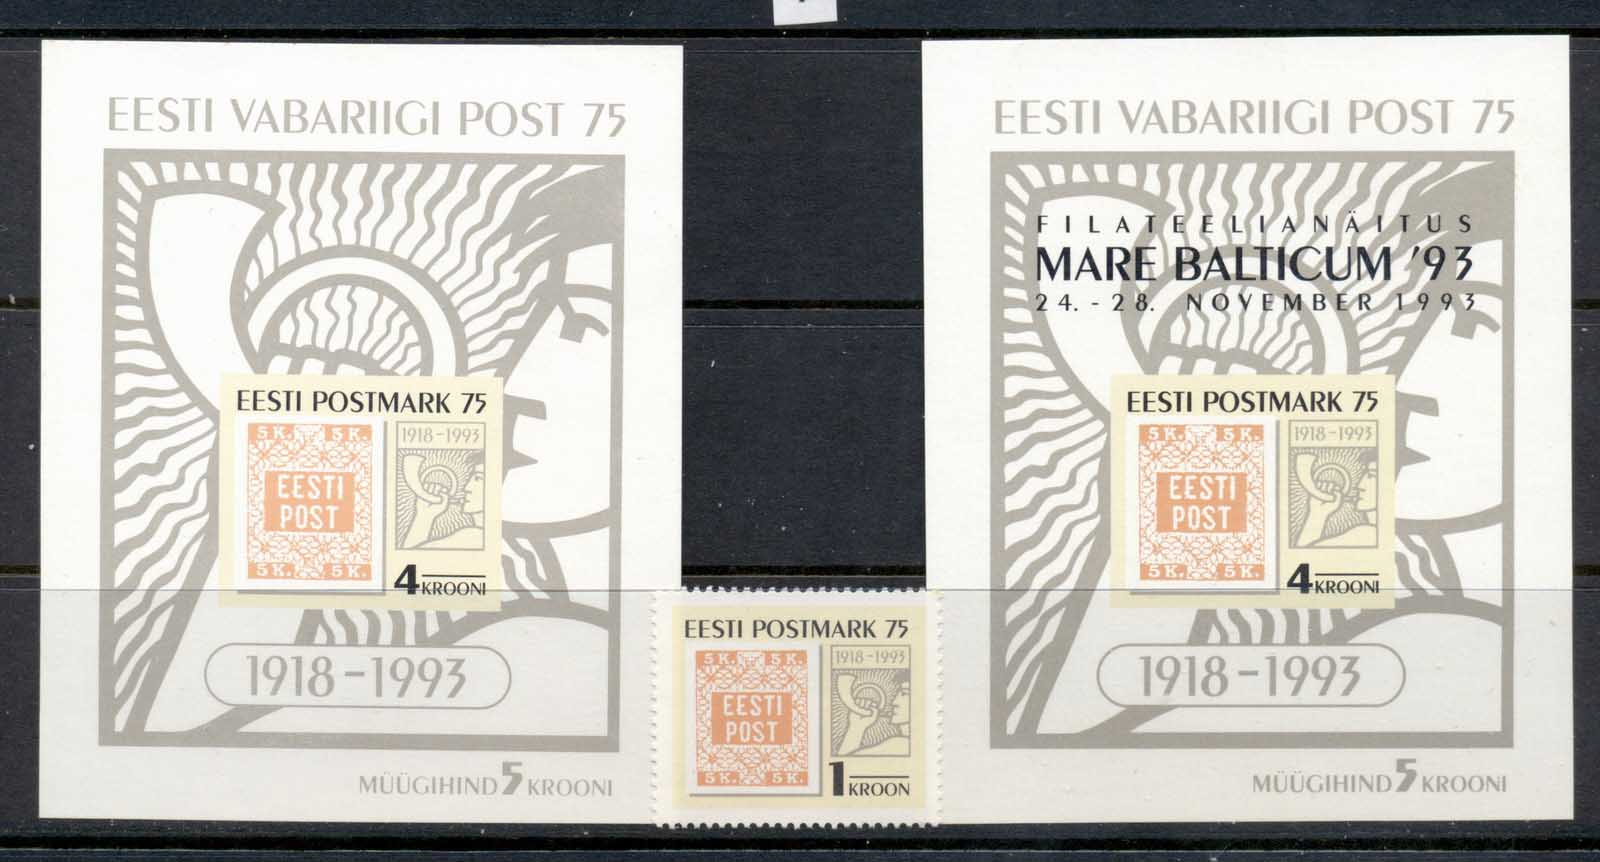 Estonia 1993 First Estonian Postage Stamp Anniv + 2xMS MUH